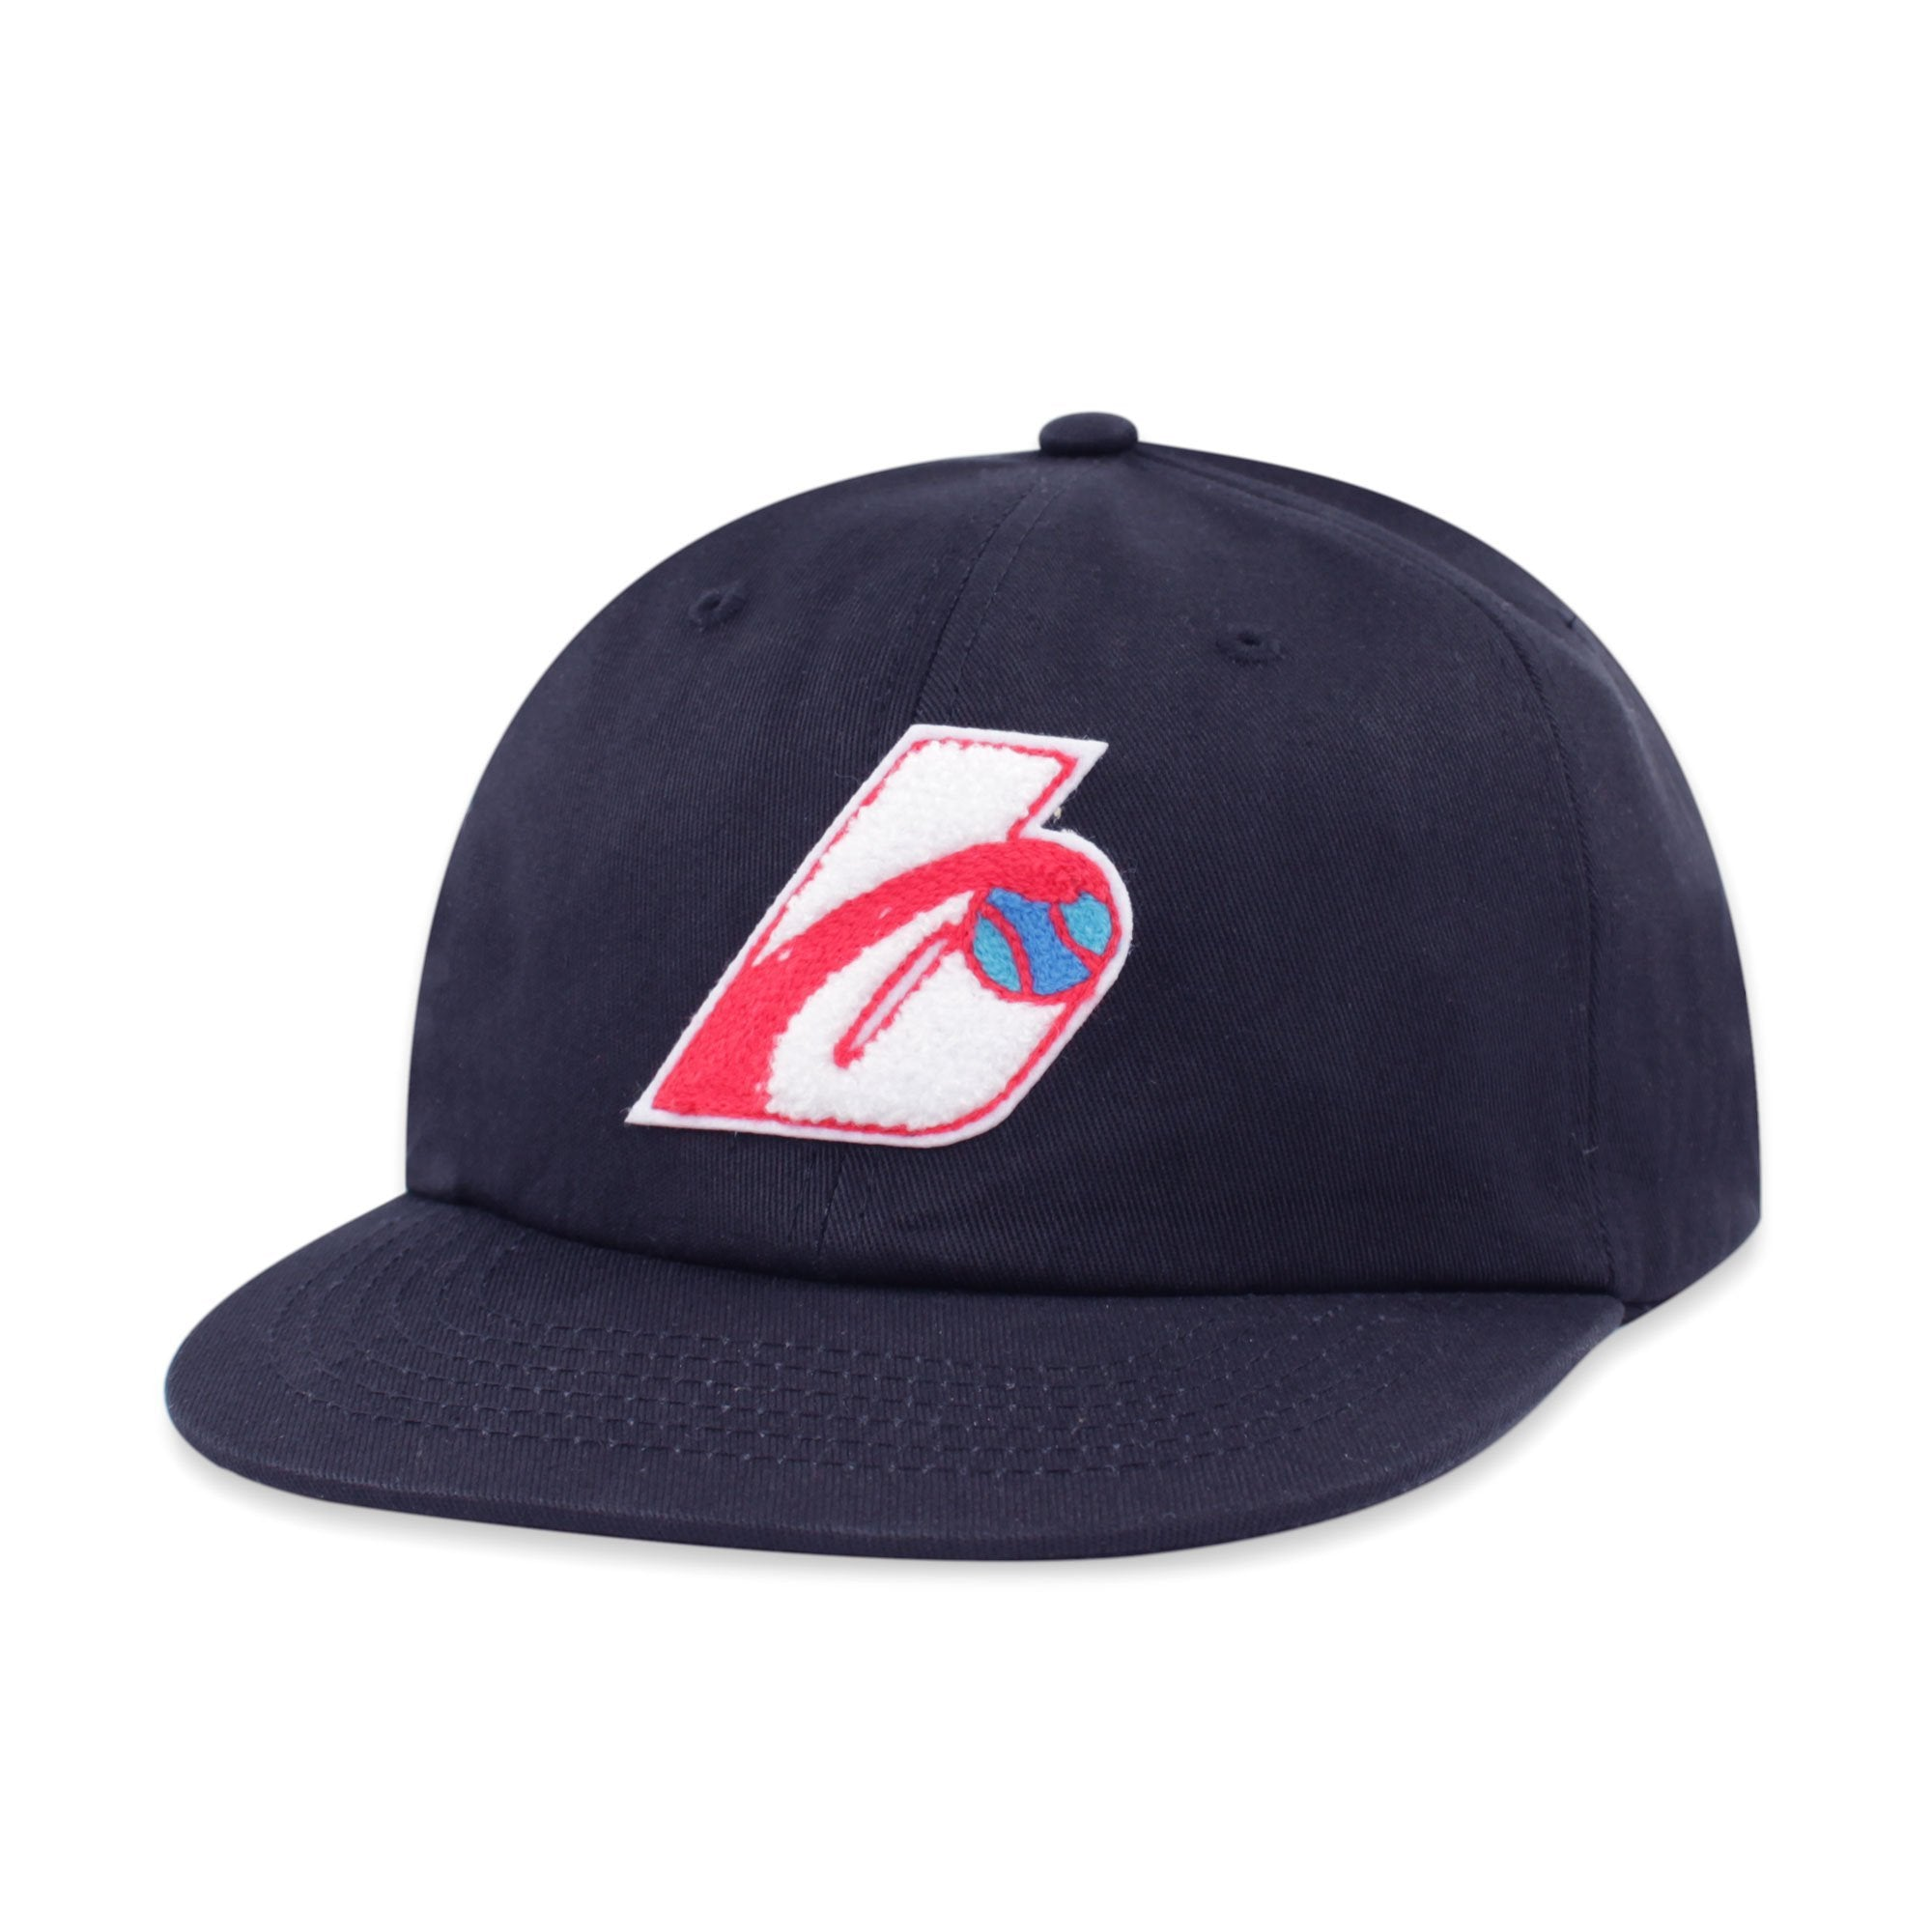 Beyond Ball Cap Product Photo #1